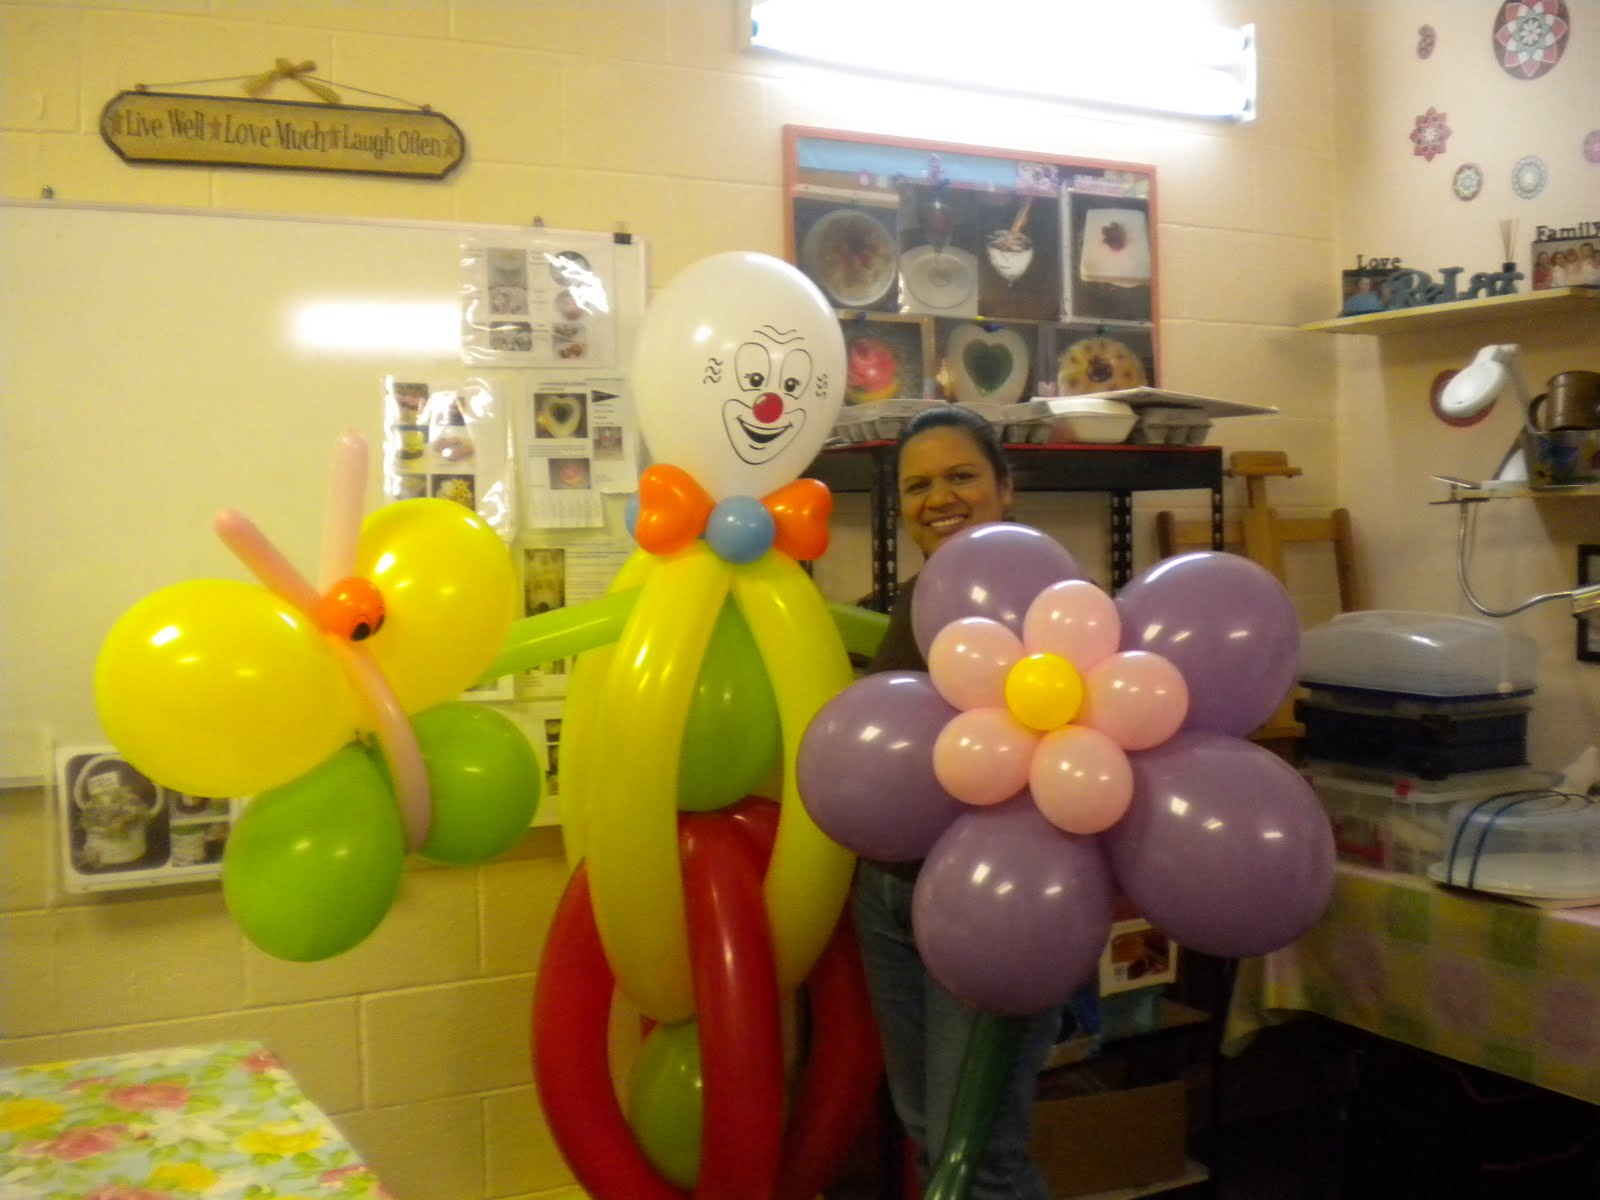 Craft pastry curso de decoraci n con globos - Estudios de decoracion ...